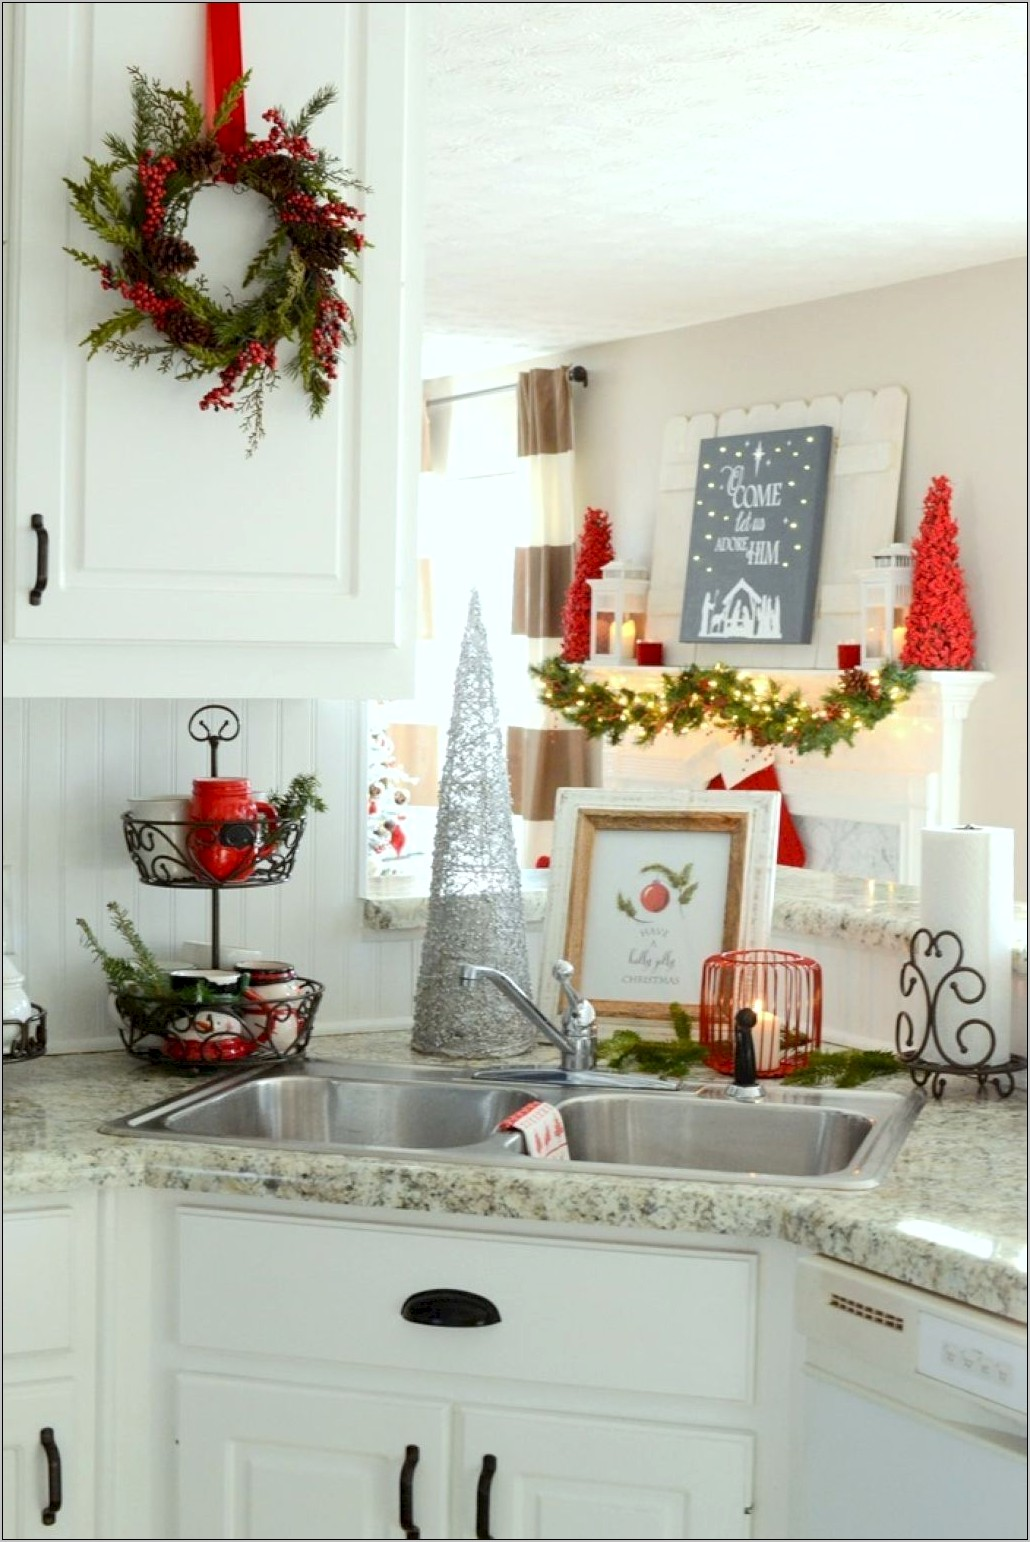 Christmas Kitchen Decorations Pinterest